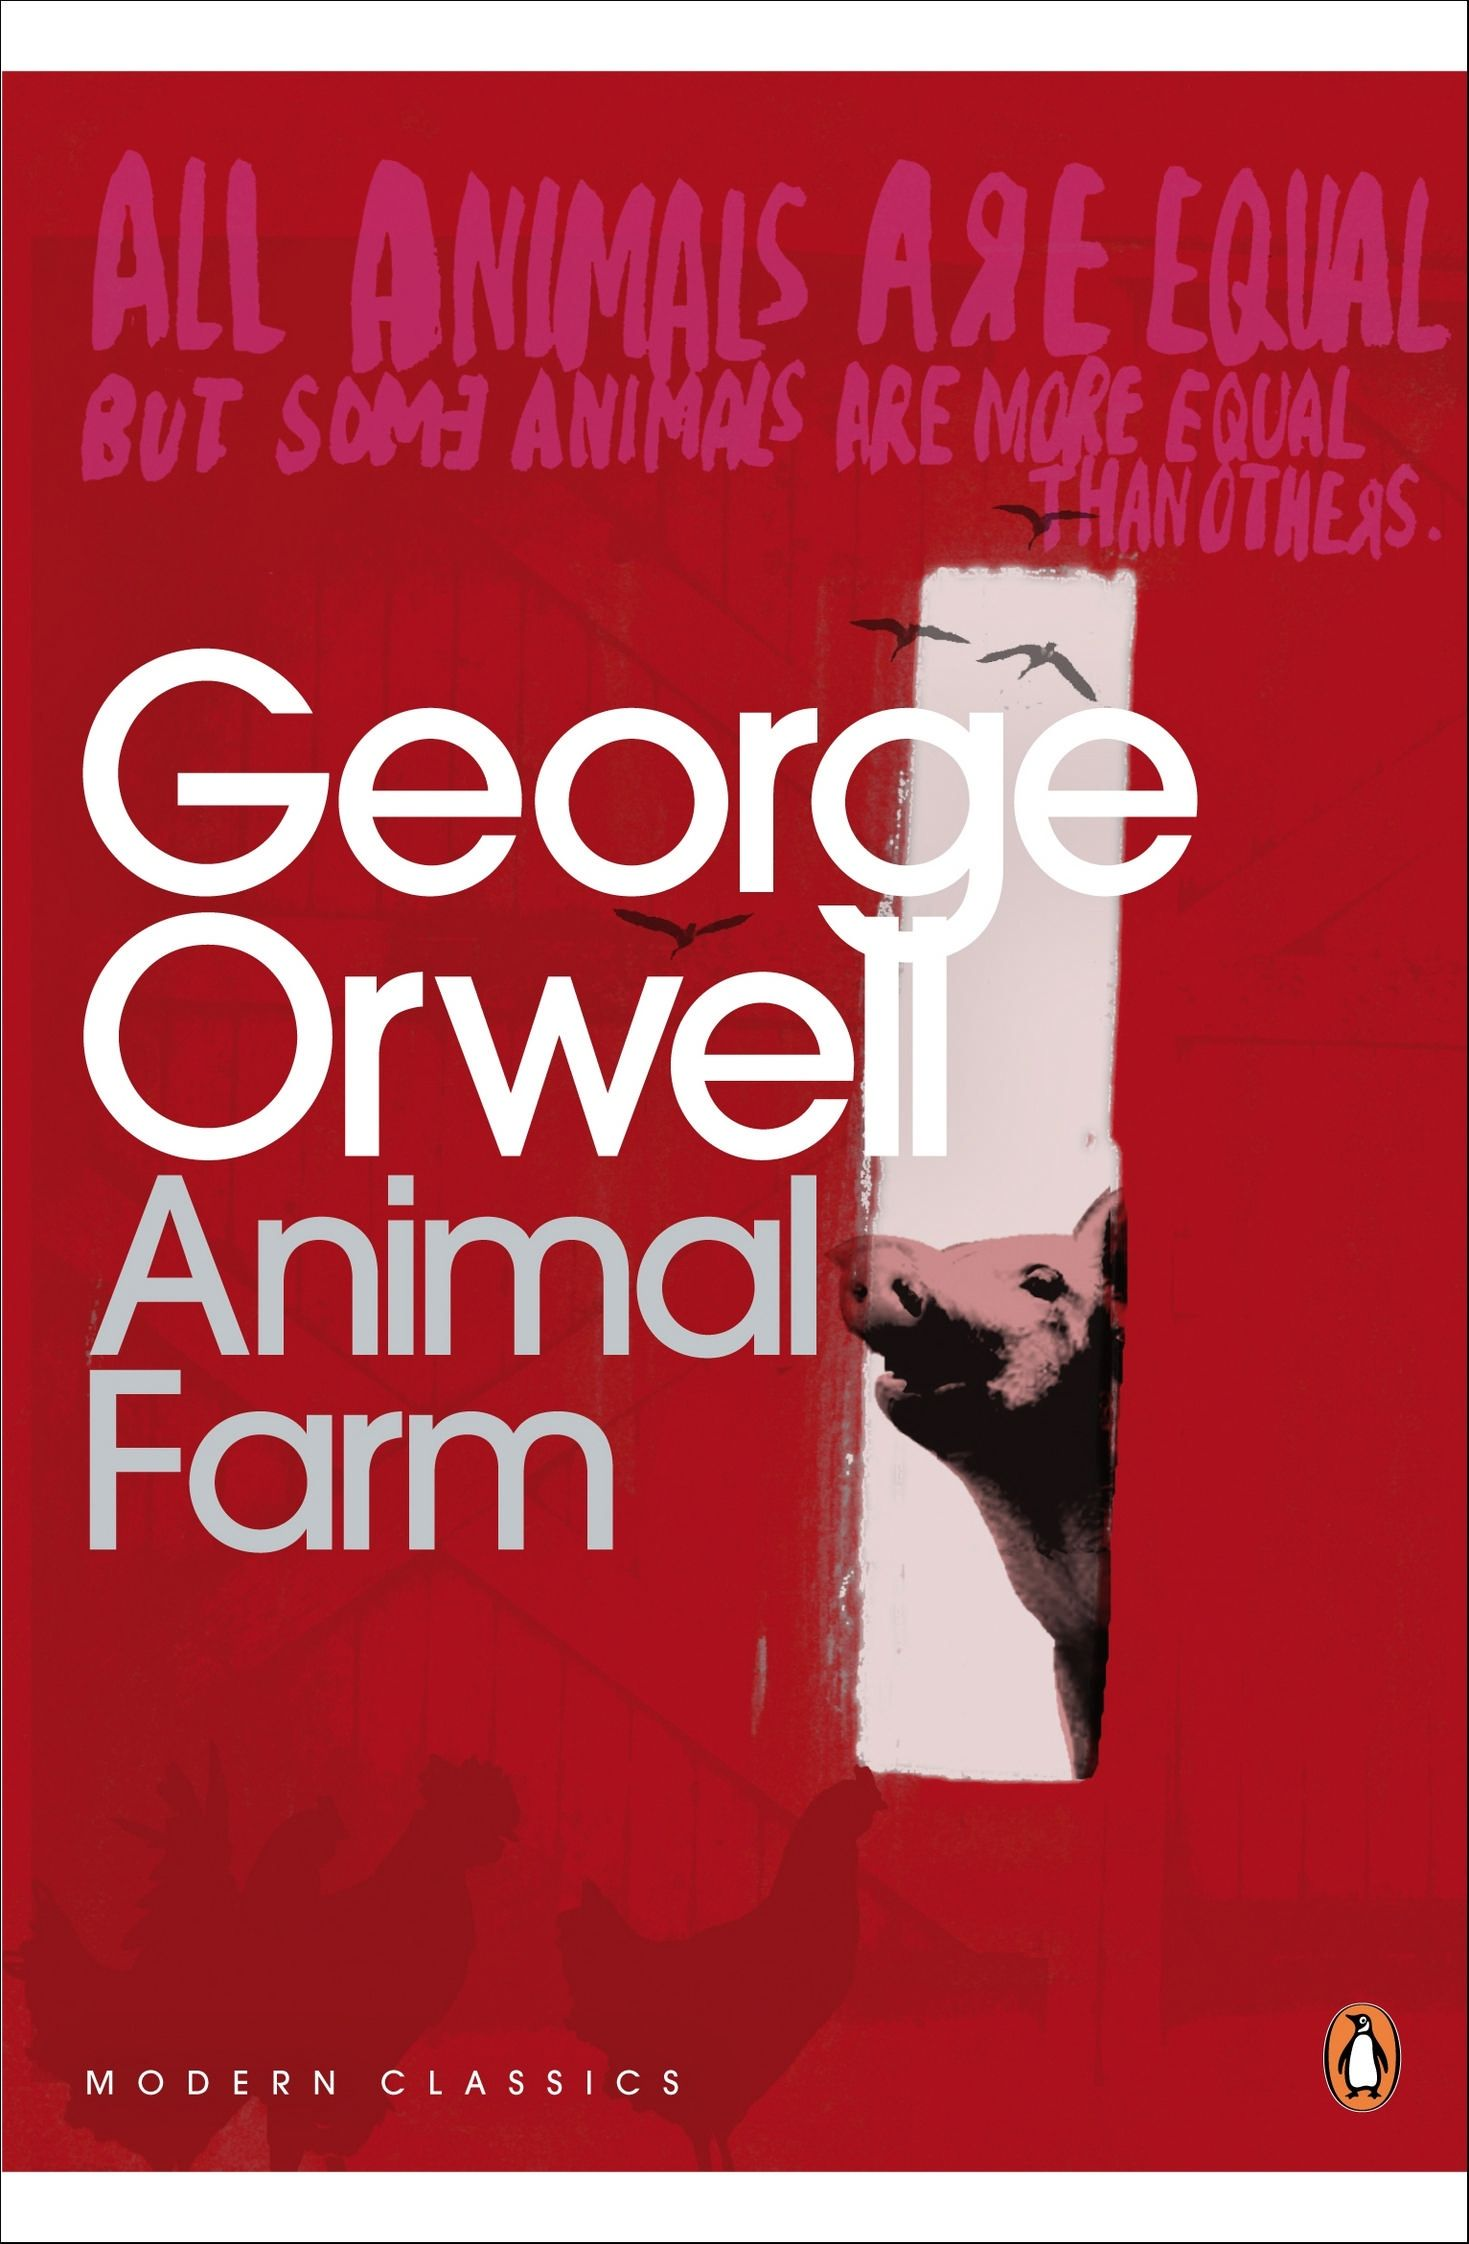 the corruption of power in animal farm by george orwell Animal farm - corruption of power topics: animal farm in animal farm, by george orwell, snowball and napoleon fight for the top spot as leader.